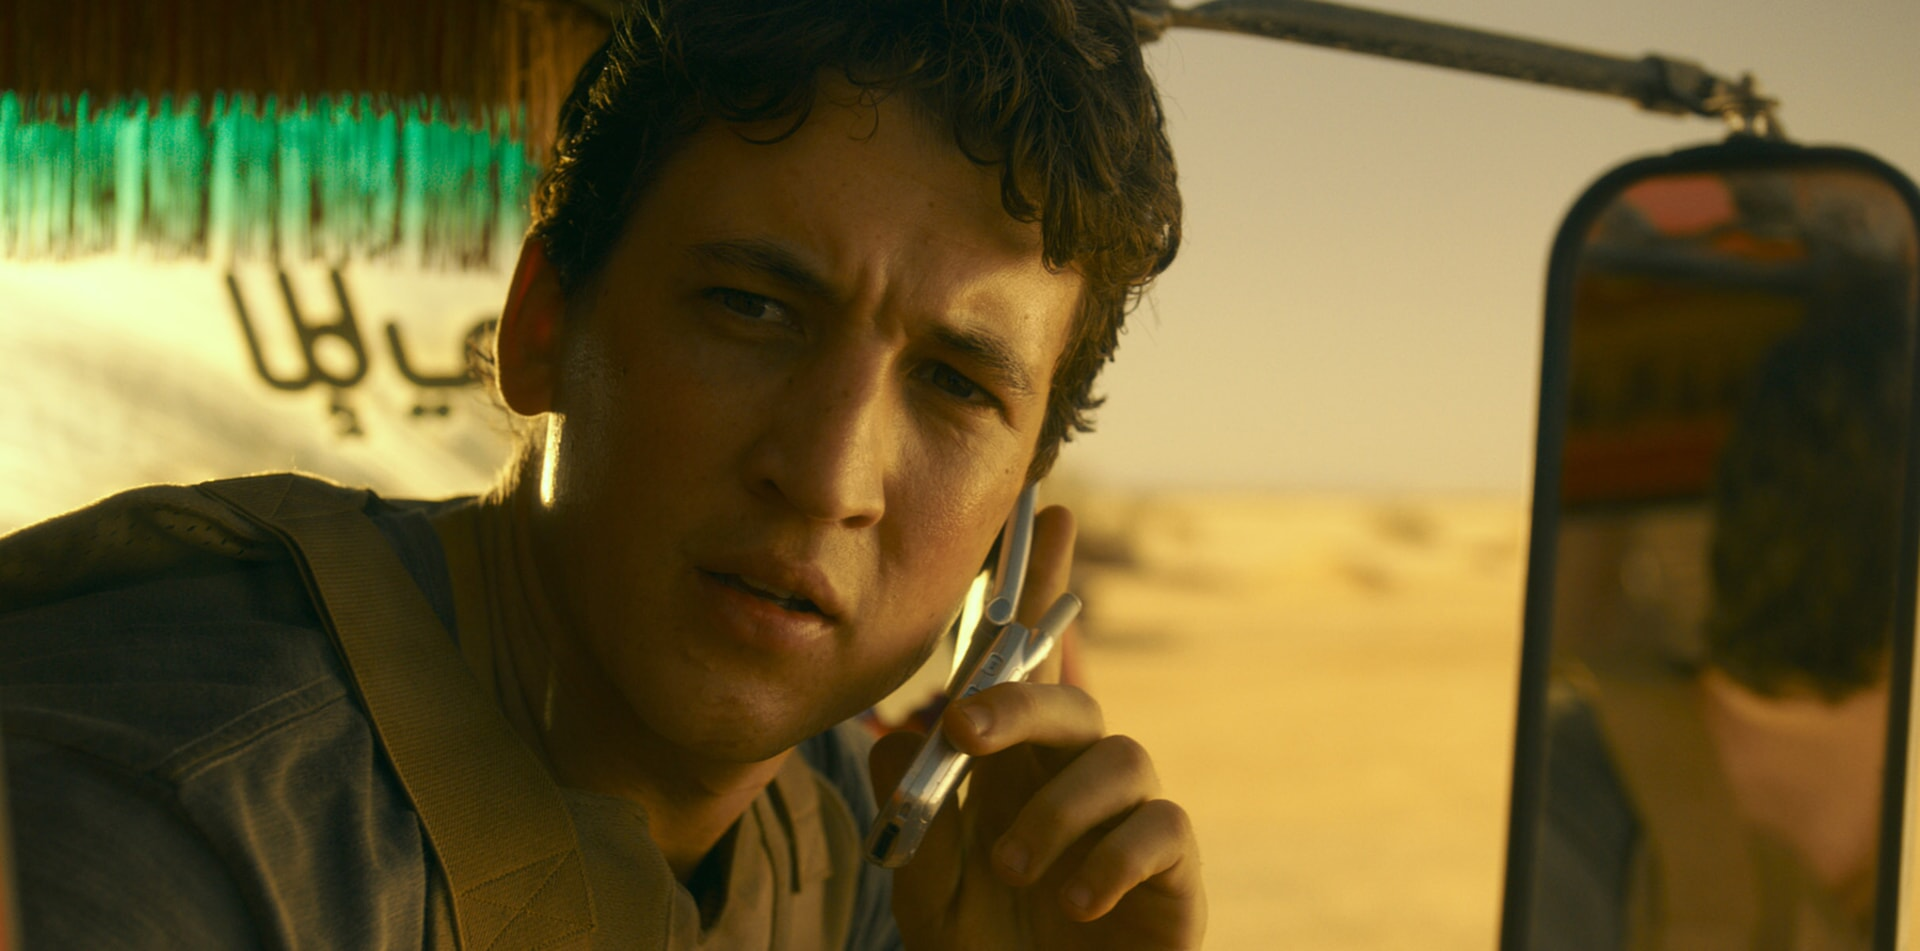 """MILES TELLER as David in Warner Bros. Pictures' comedic drama (based on true events) """"WAR DOGS,"""" a Warner Bros. Pictures release."""